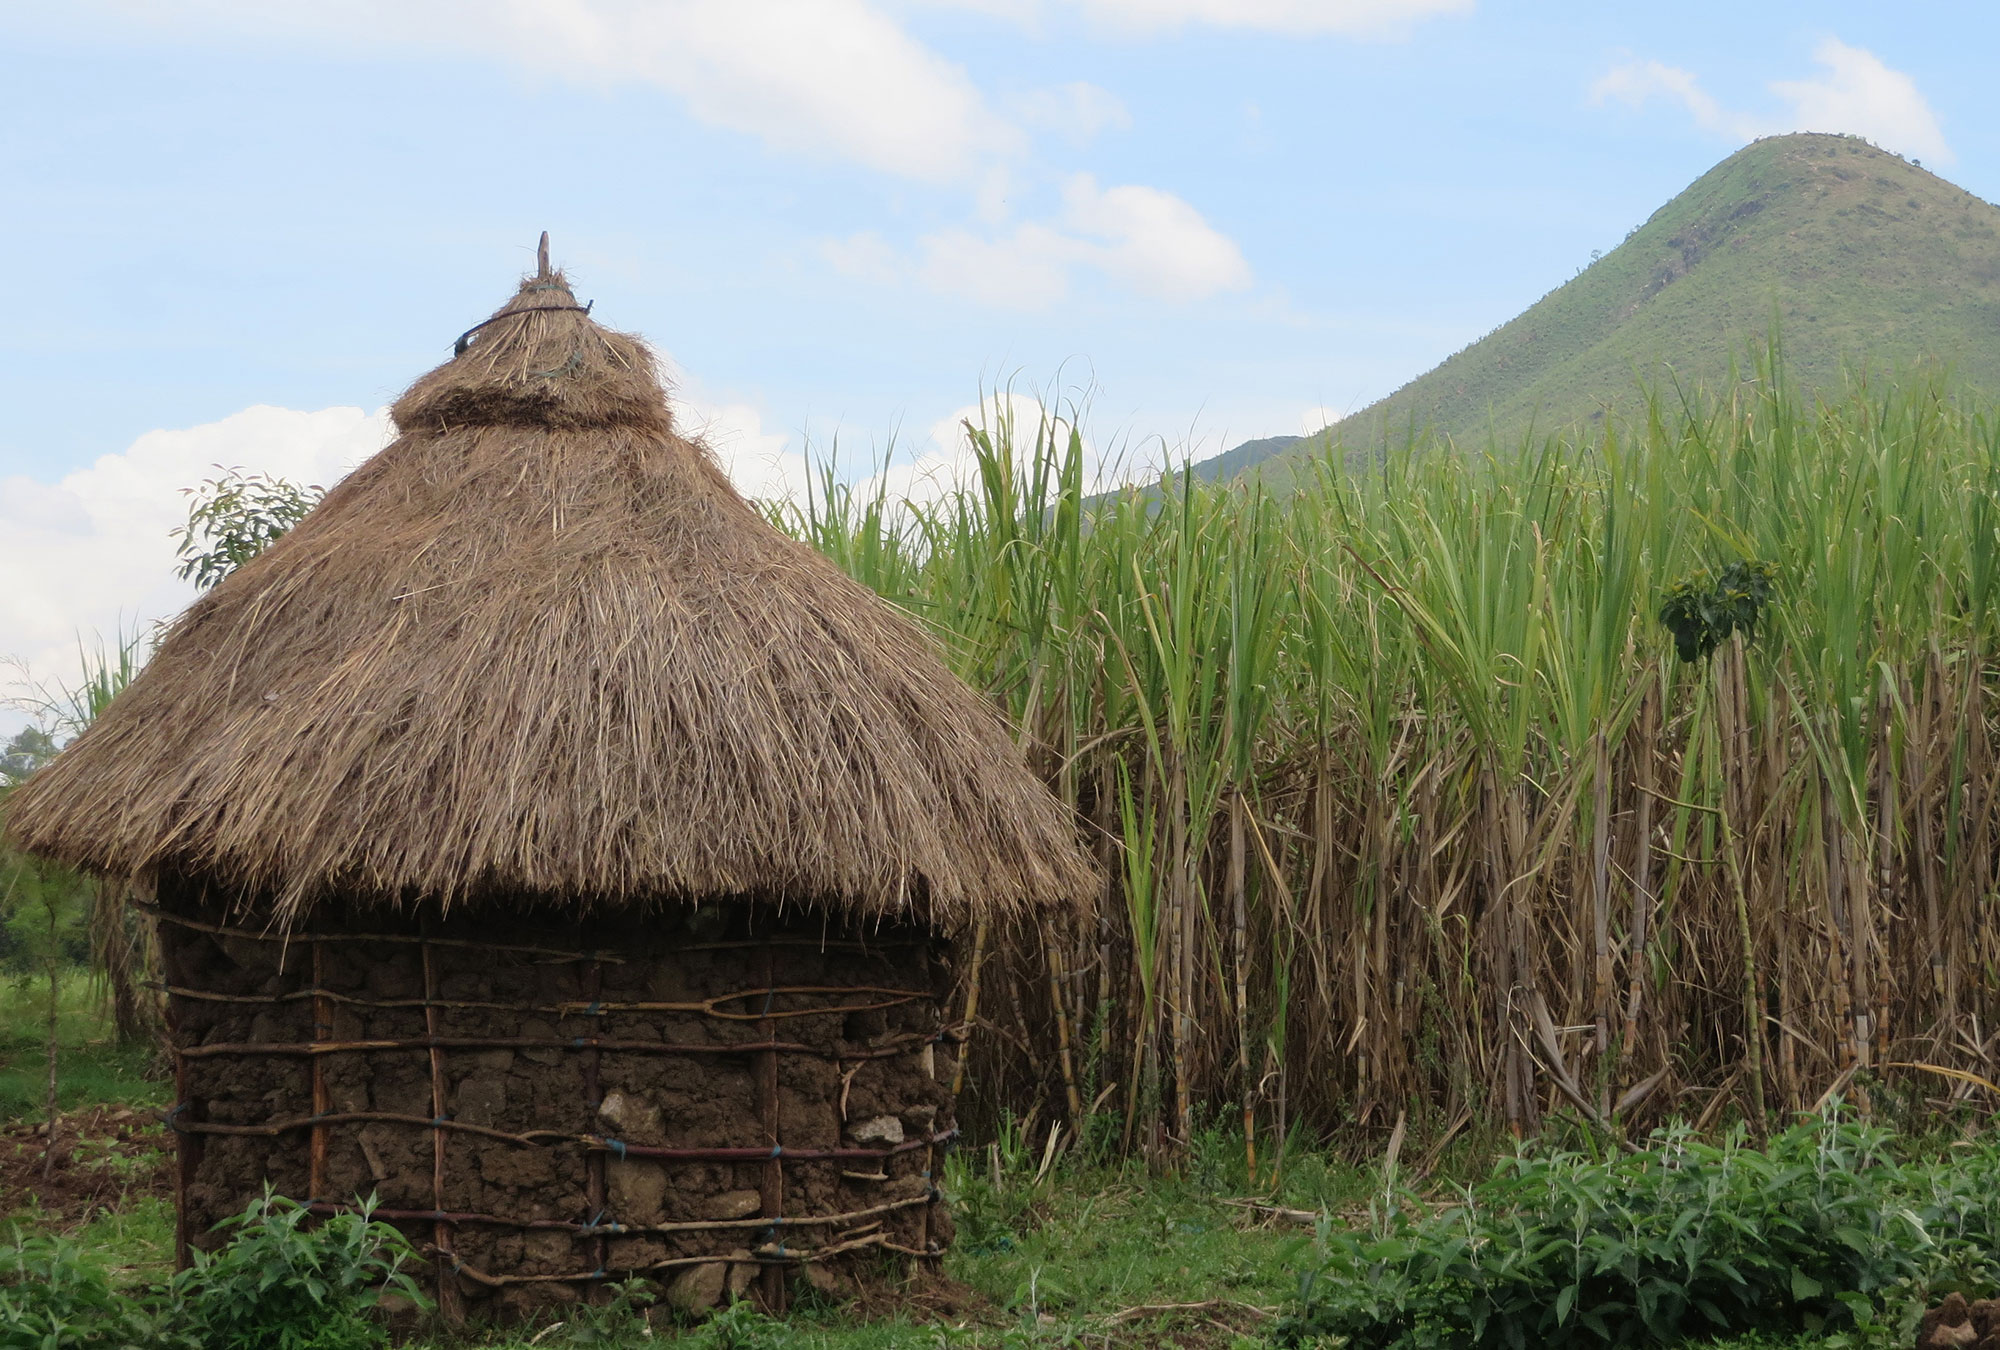 Hut next to a field of sugarcane in western Kenya.